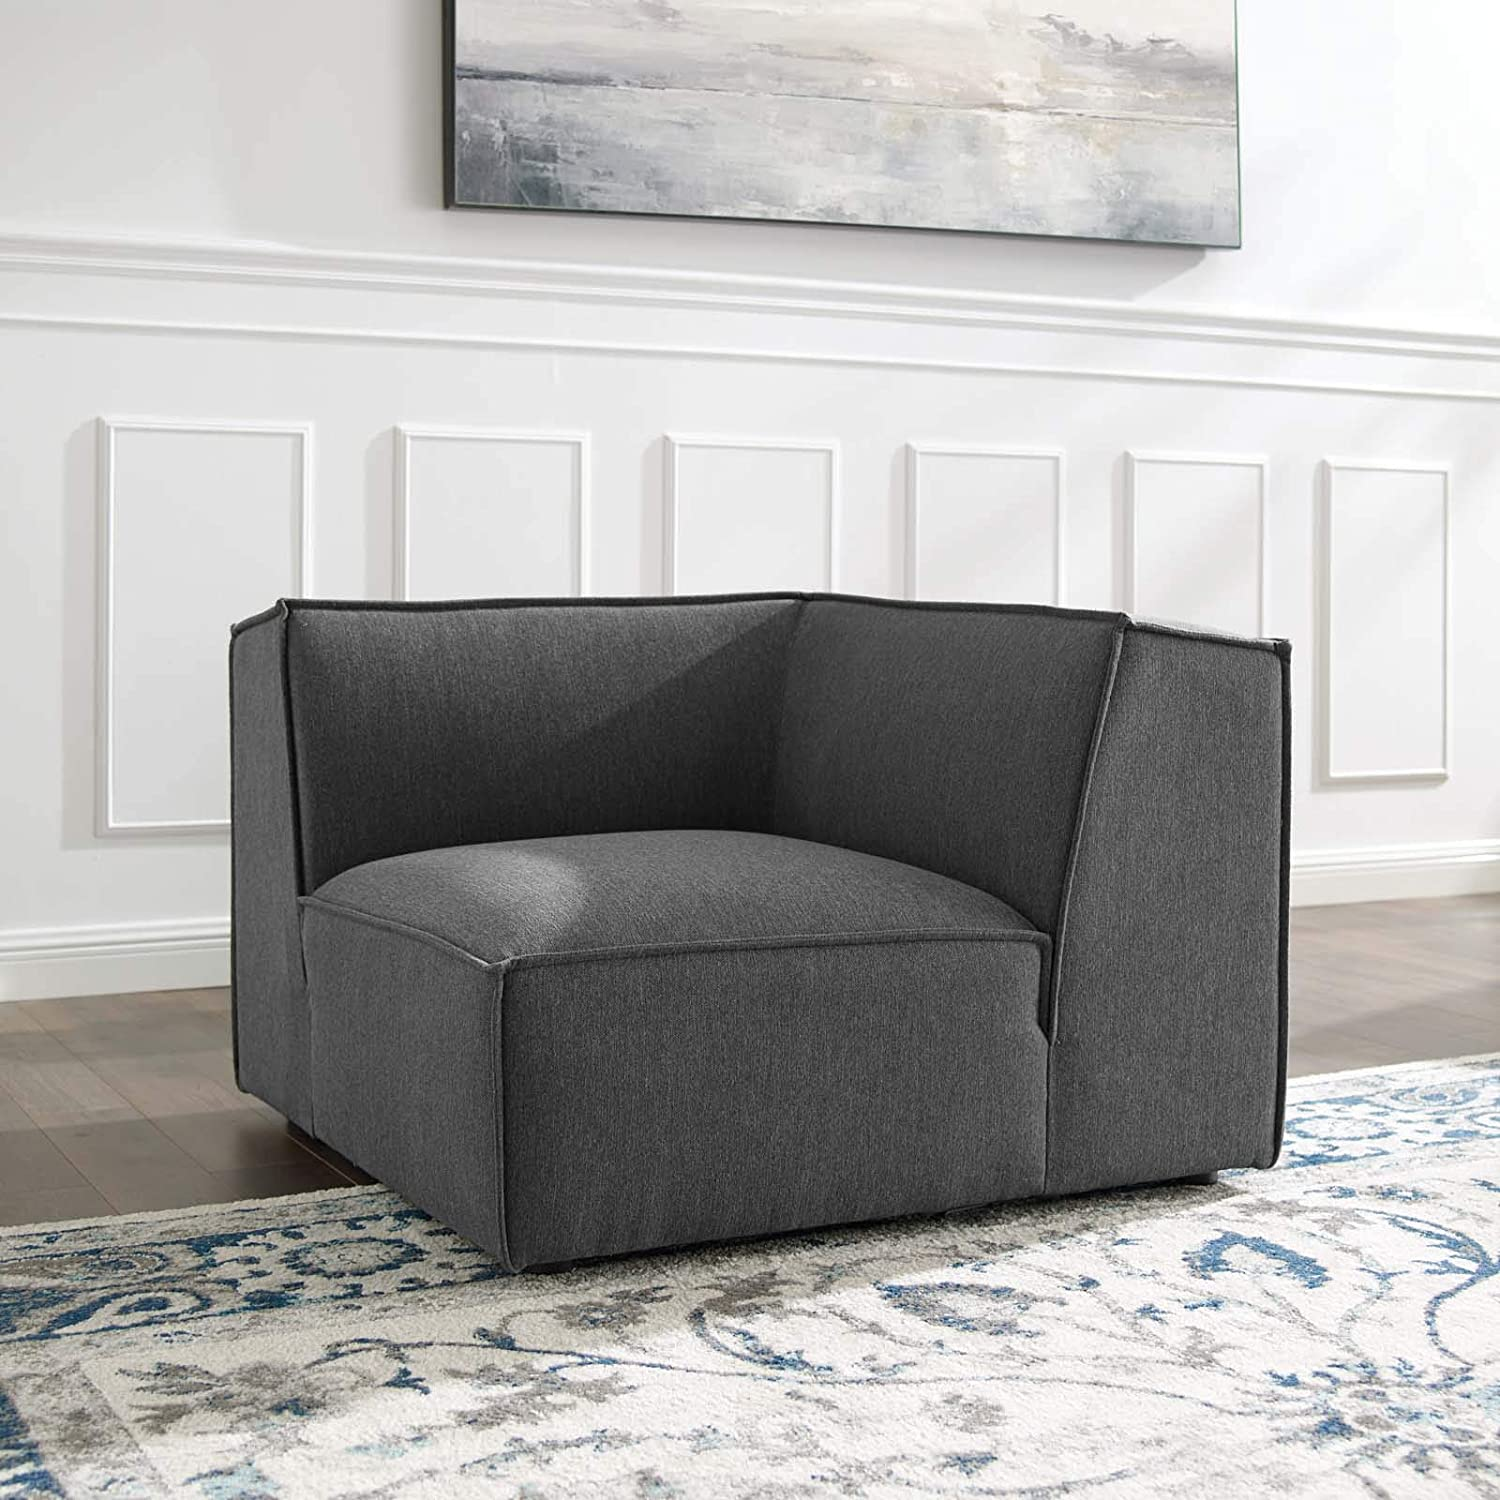 Modway Restore Sectional Sofa Corner Chair Charcoal